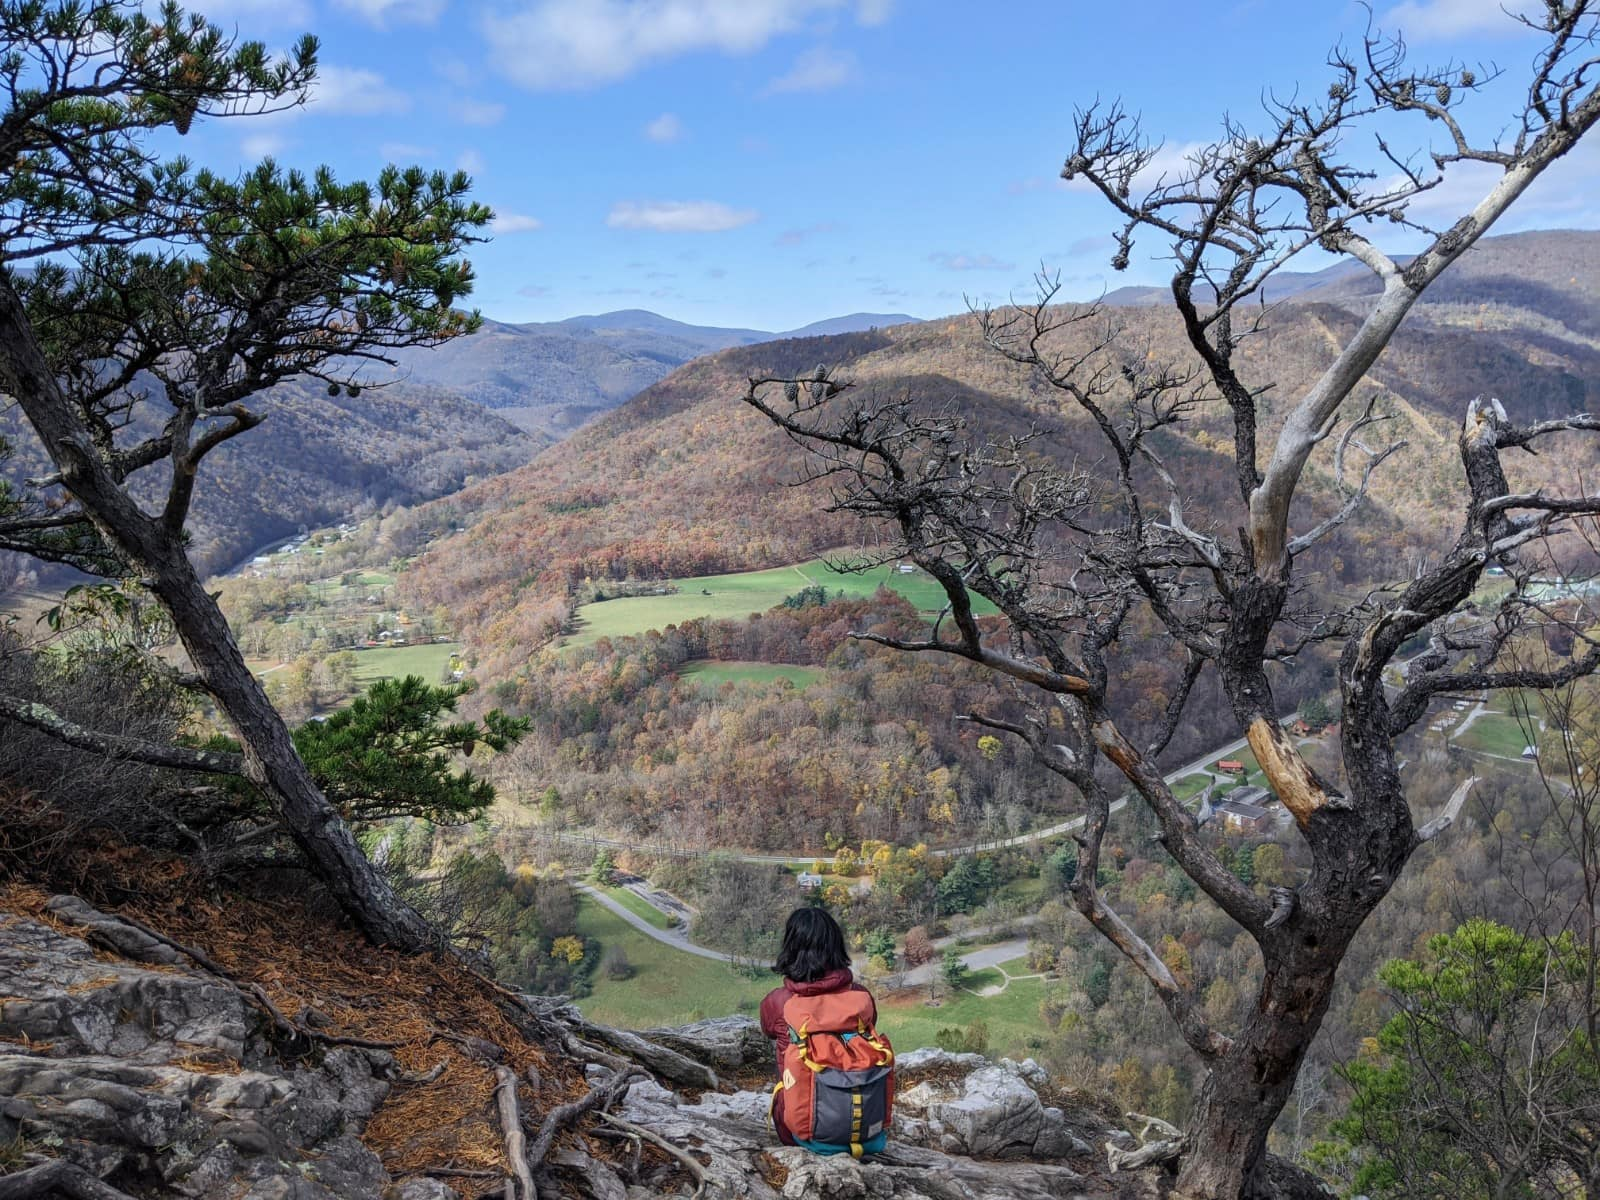 Me with my back to the camera overlooking the panoramic view at the peak of Seneca Rocks